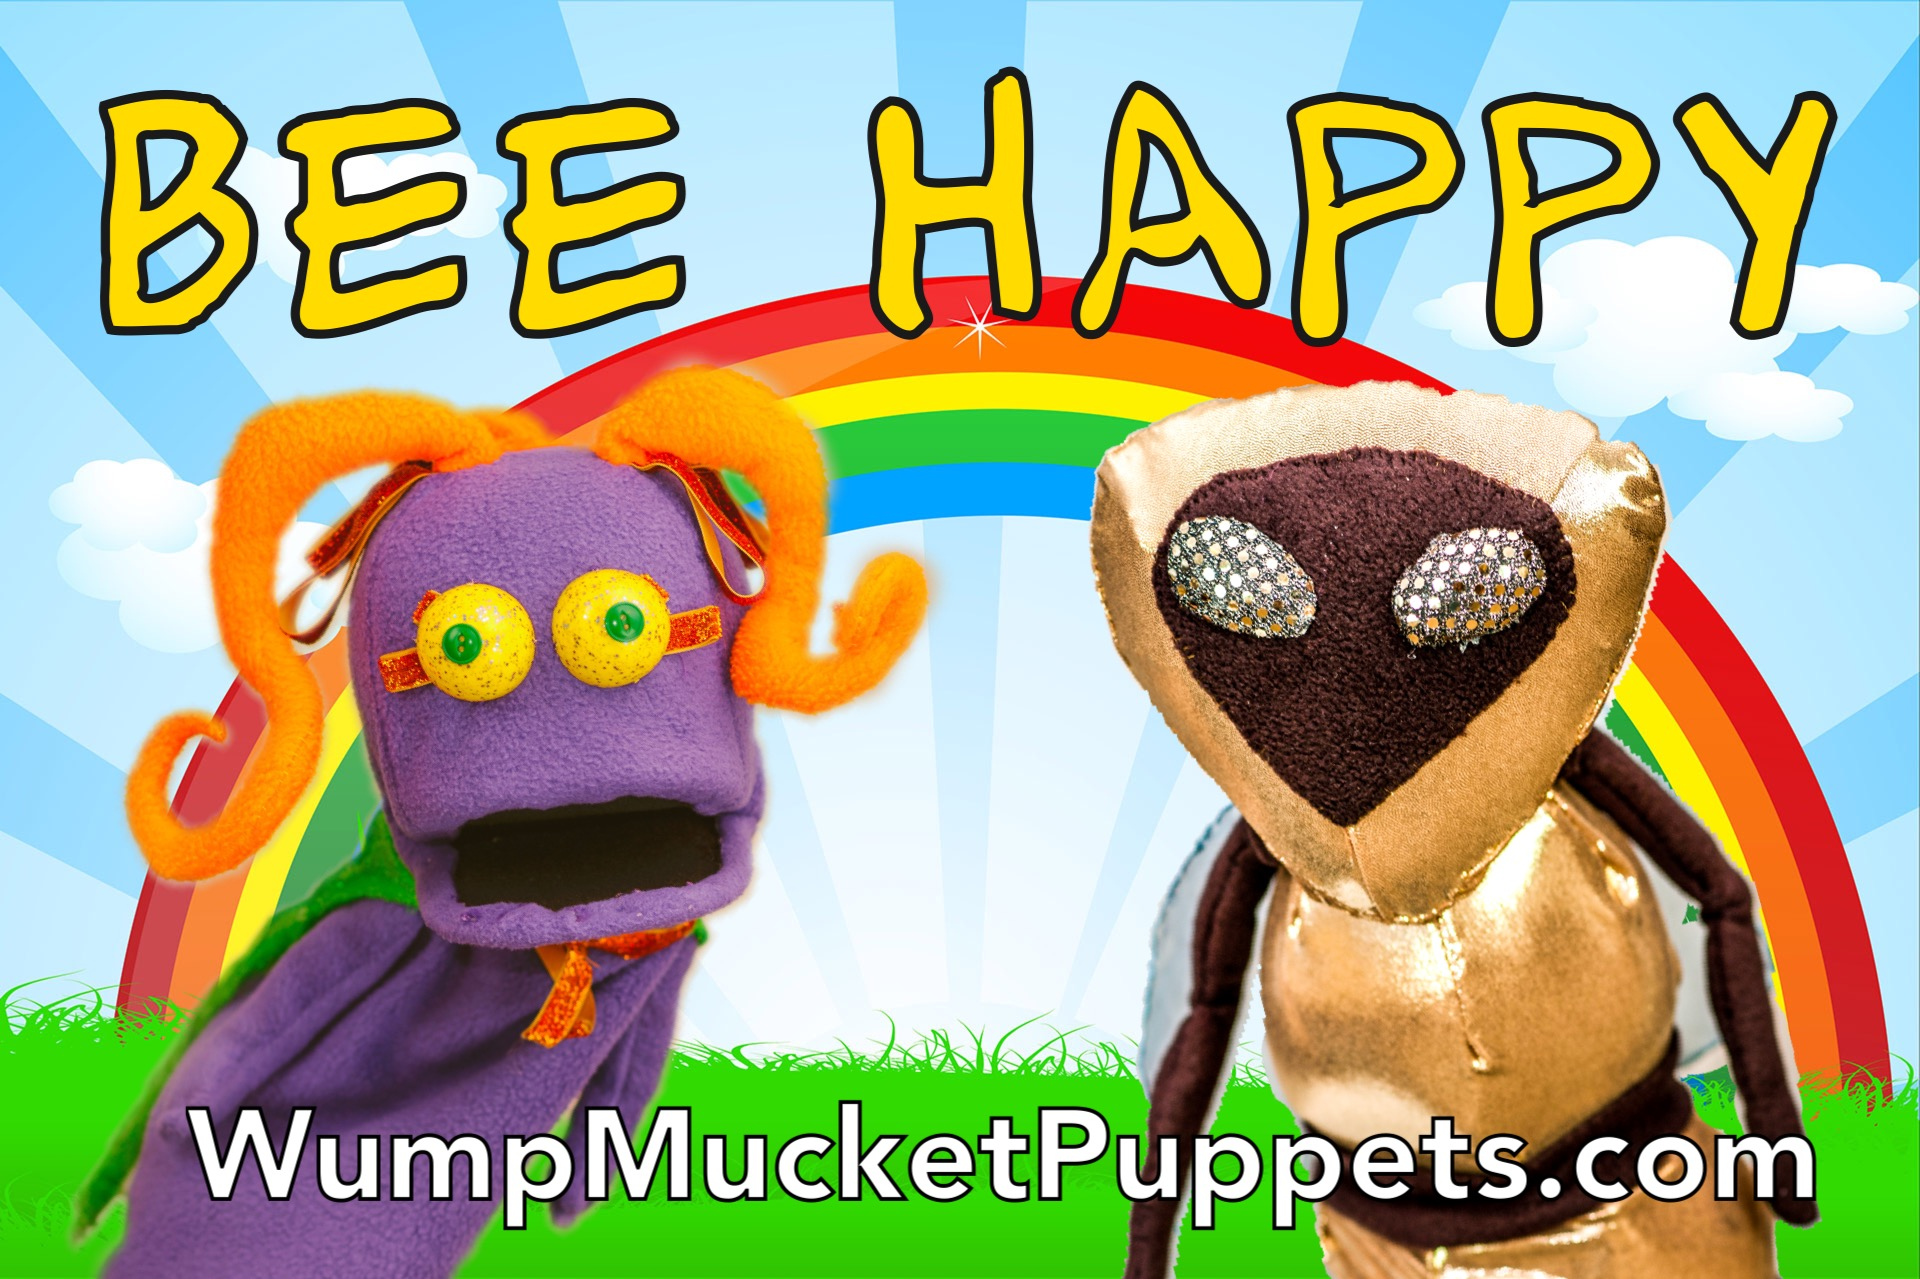 Bee Happy Wump Mucket Puppets